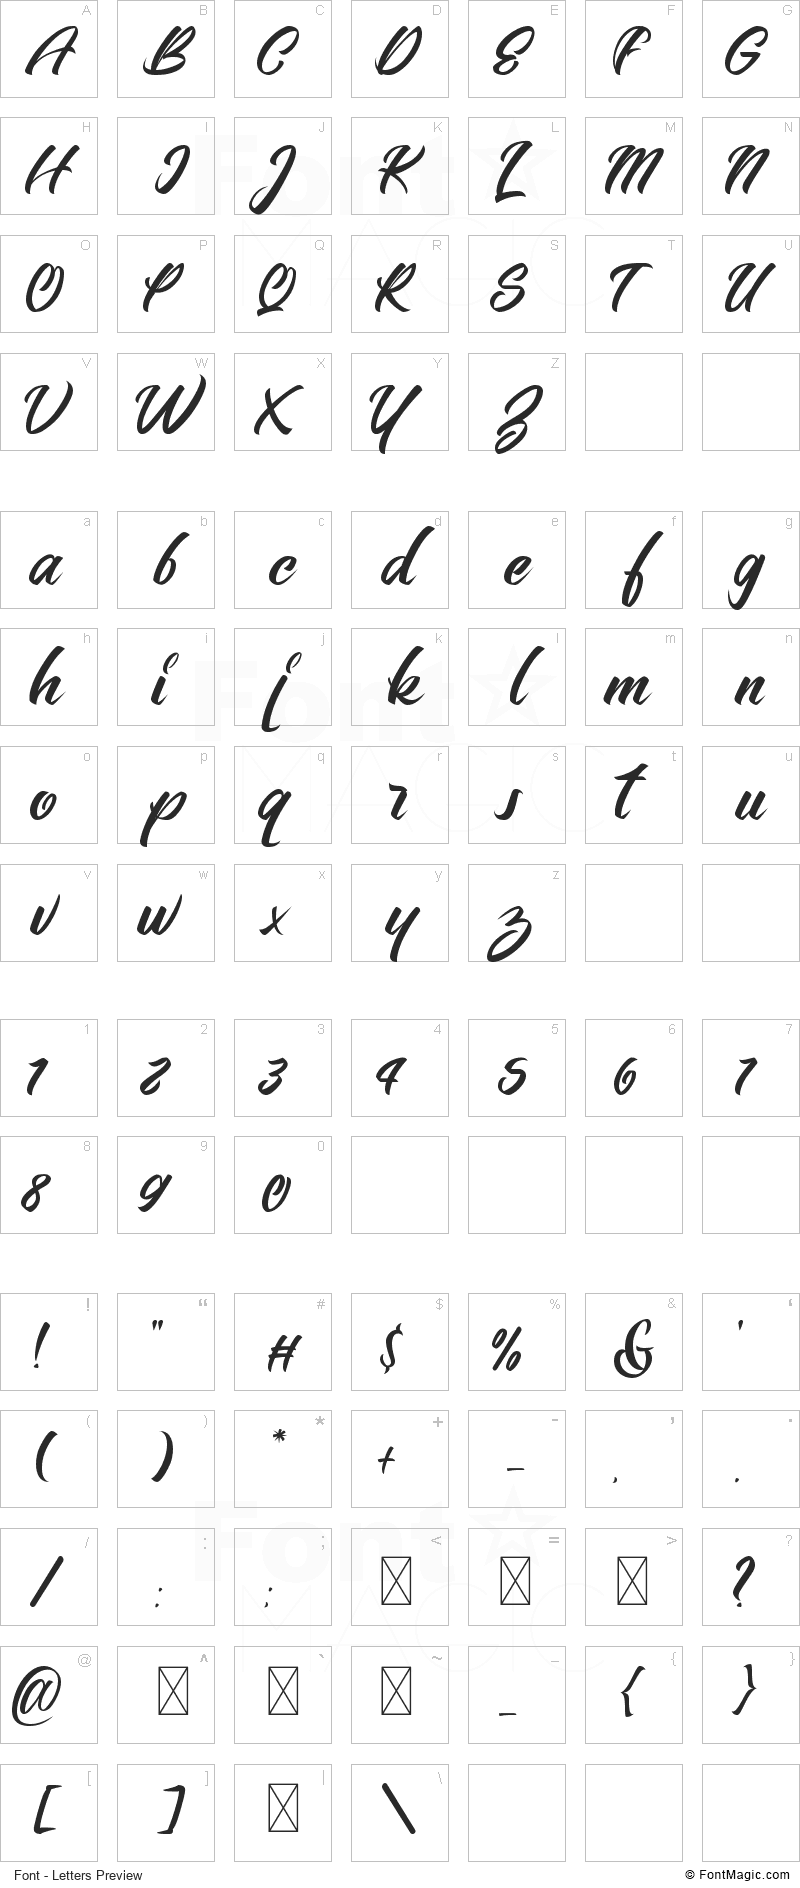 Bellerin Font - All Latters Preview Chart